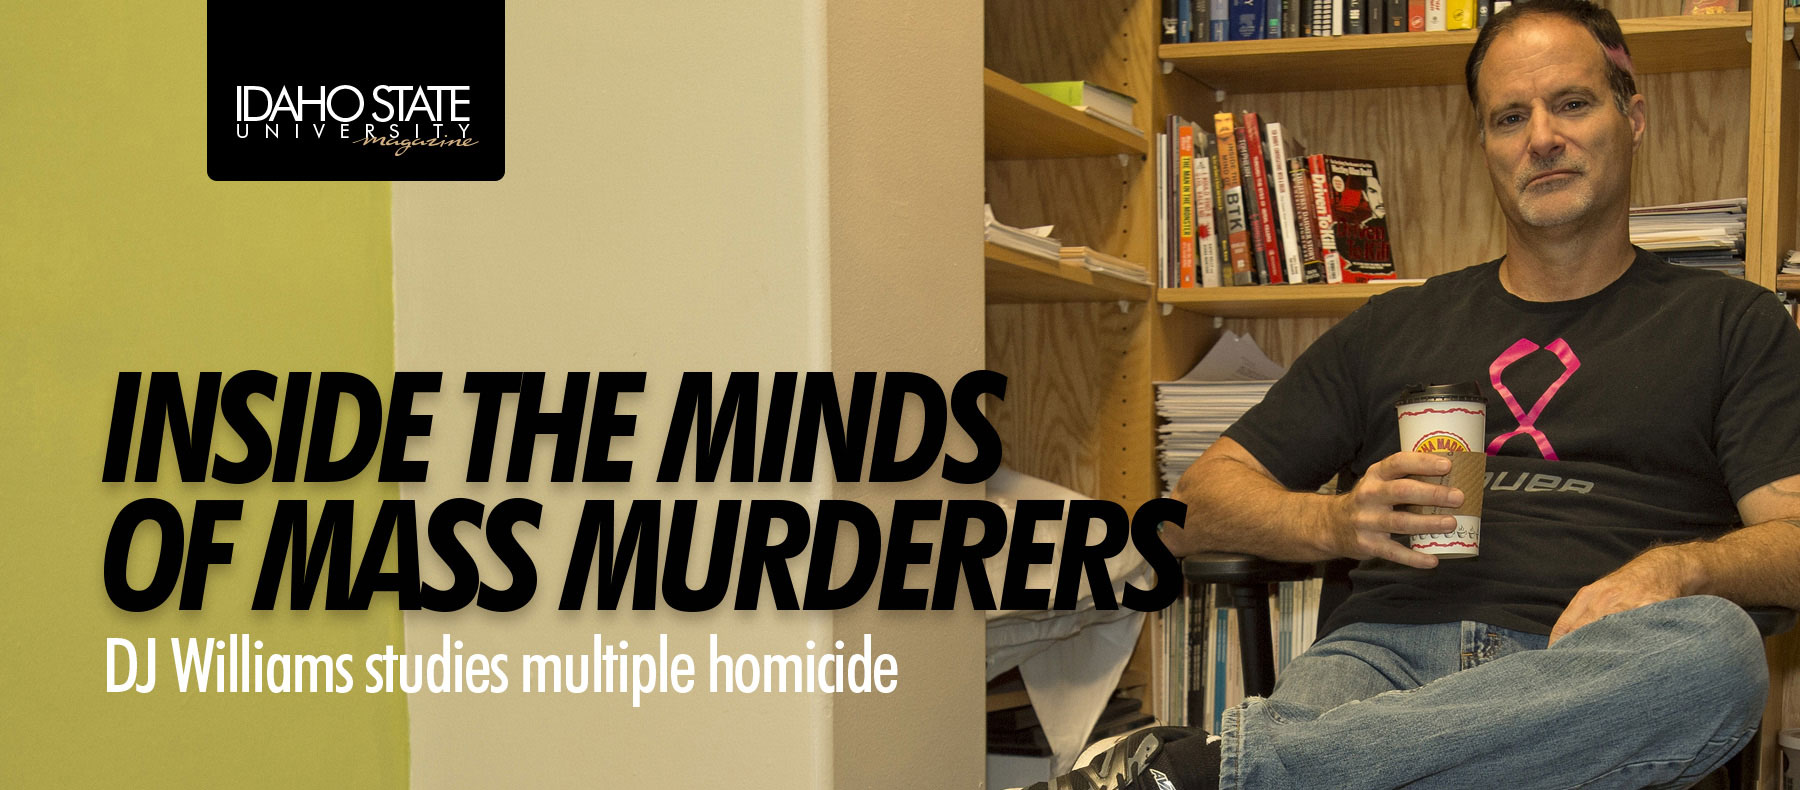 Inside the minds of mass murderers. Dj Williams studies multiple homicide.